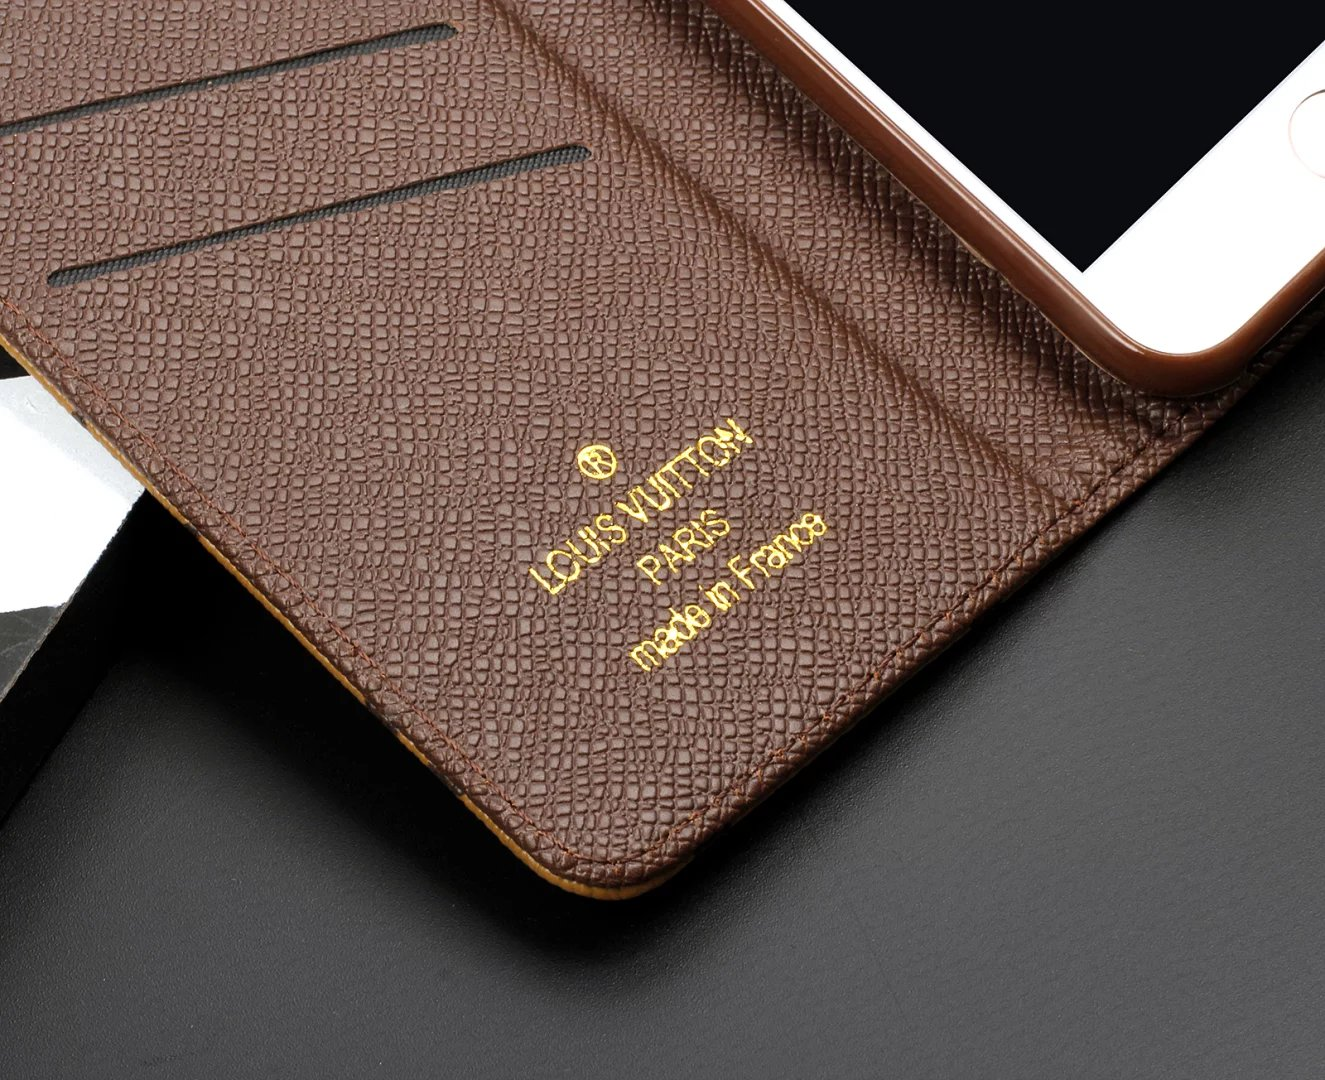 iphone hülle selbst designen iphone case foto Louis Vuitton iphone6 hülle stoßfeste hülle iphone 6 leder ca6 iphone 6 persönliche handyhülle die coolsten iphone hüllen foto smartphone hülle iphone 6 silikonhülle